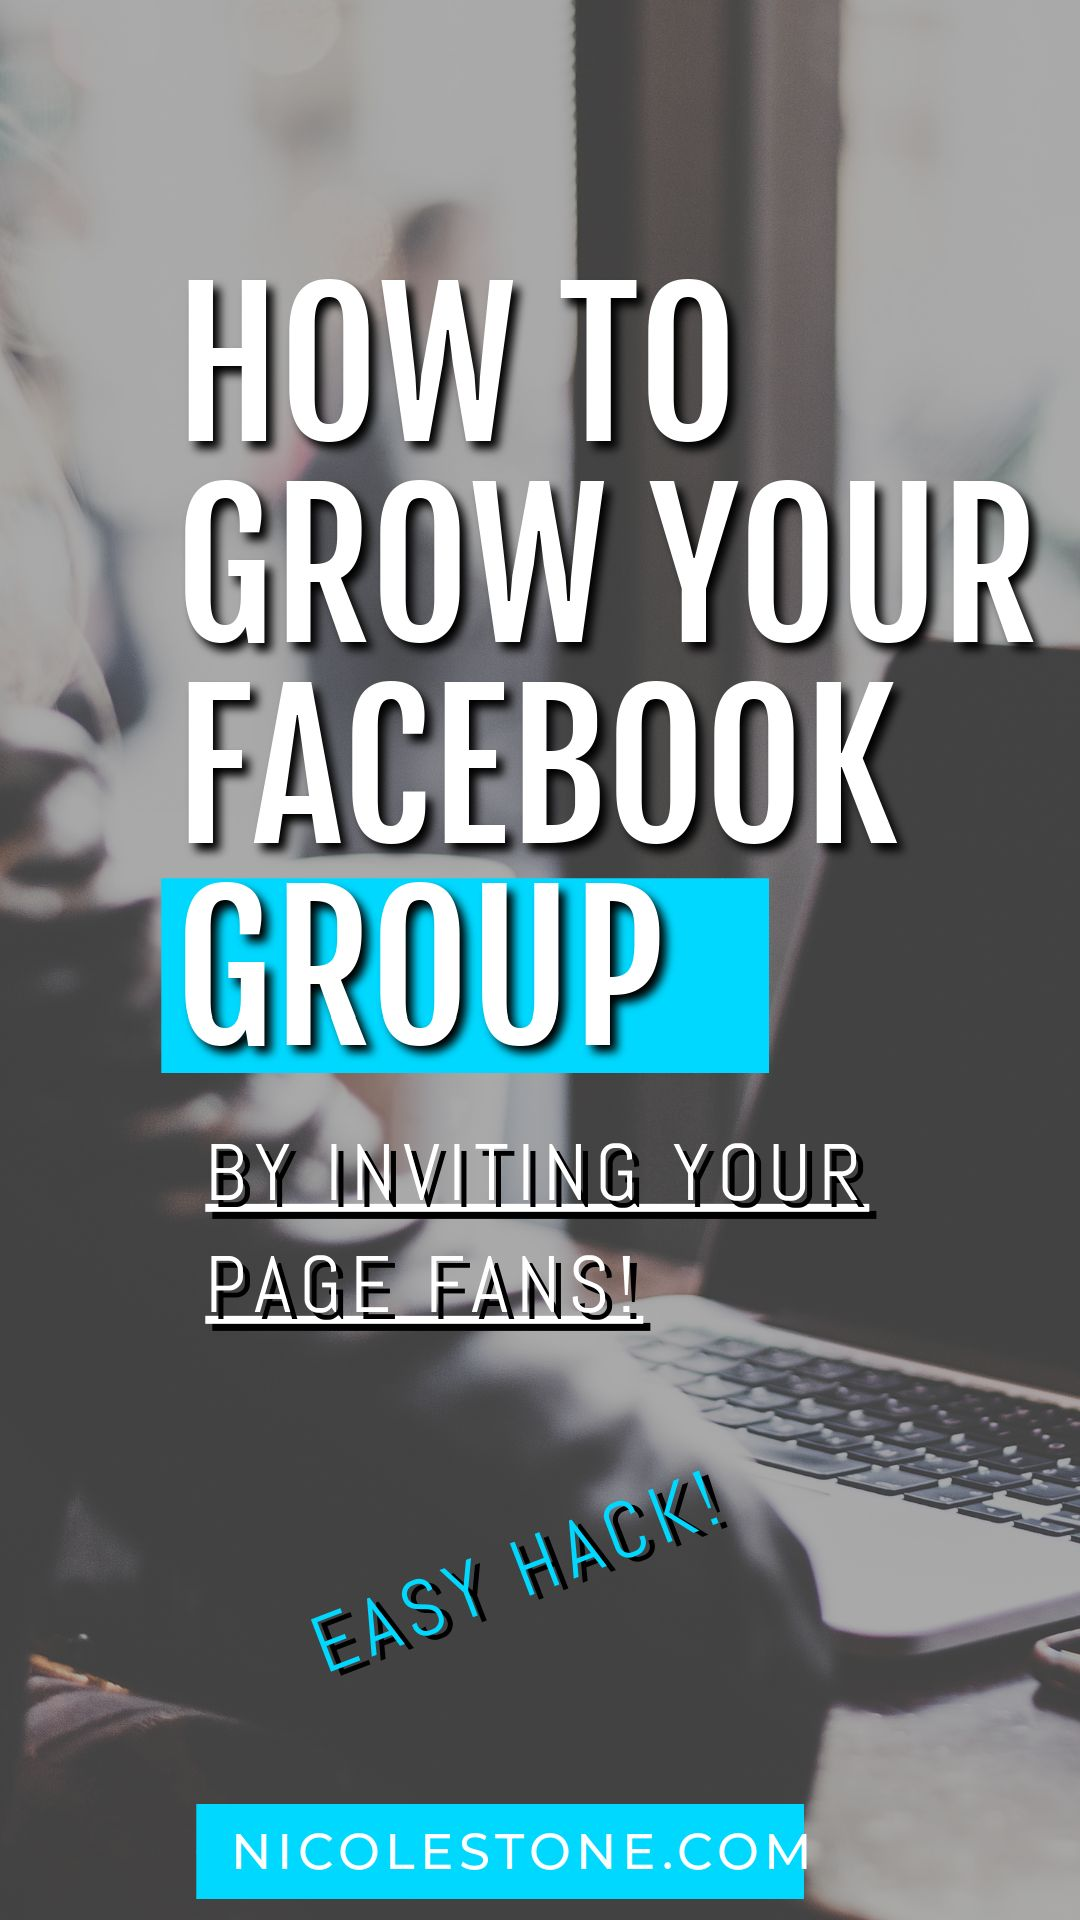 Grow your Facebook group easily with this quick tip! This is the best way to get your group growing!